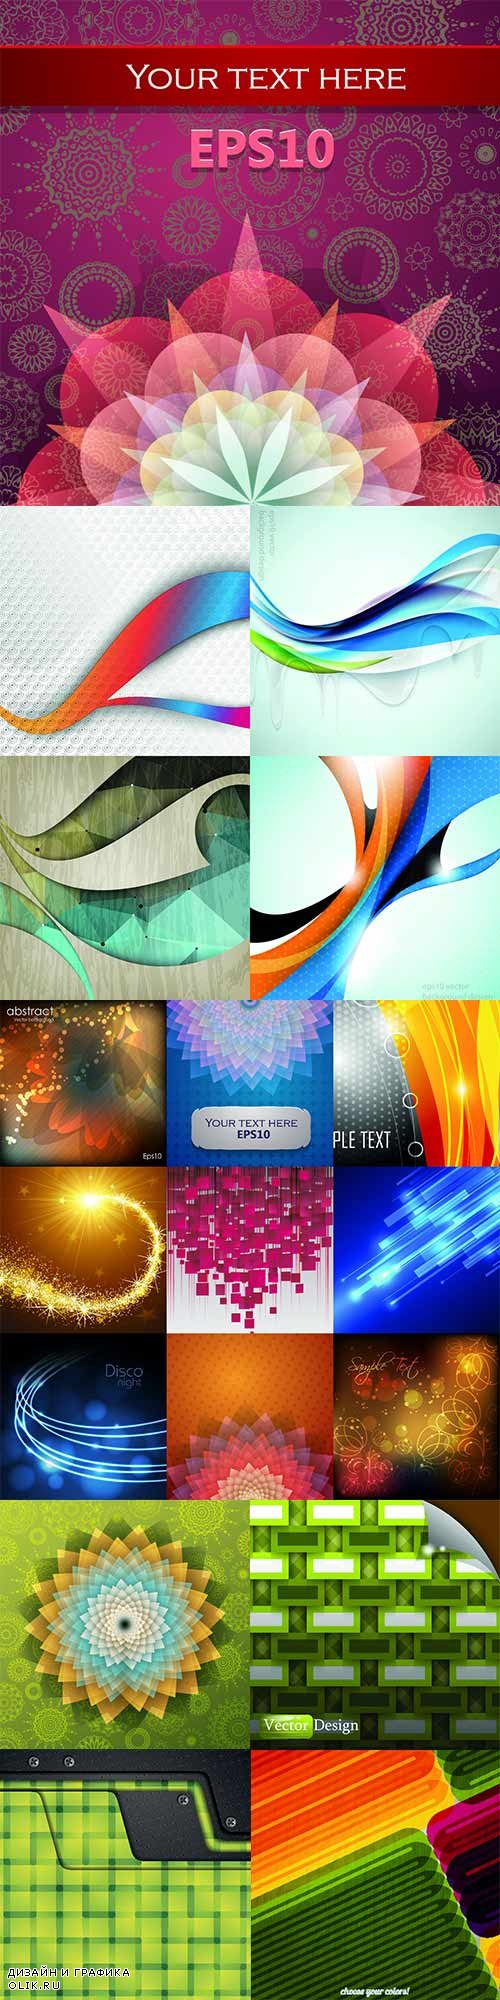 Bright colorful abstract backgrounds vector - 85